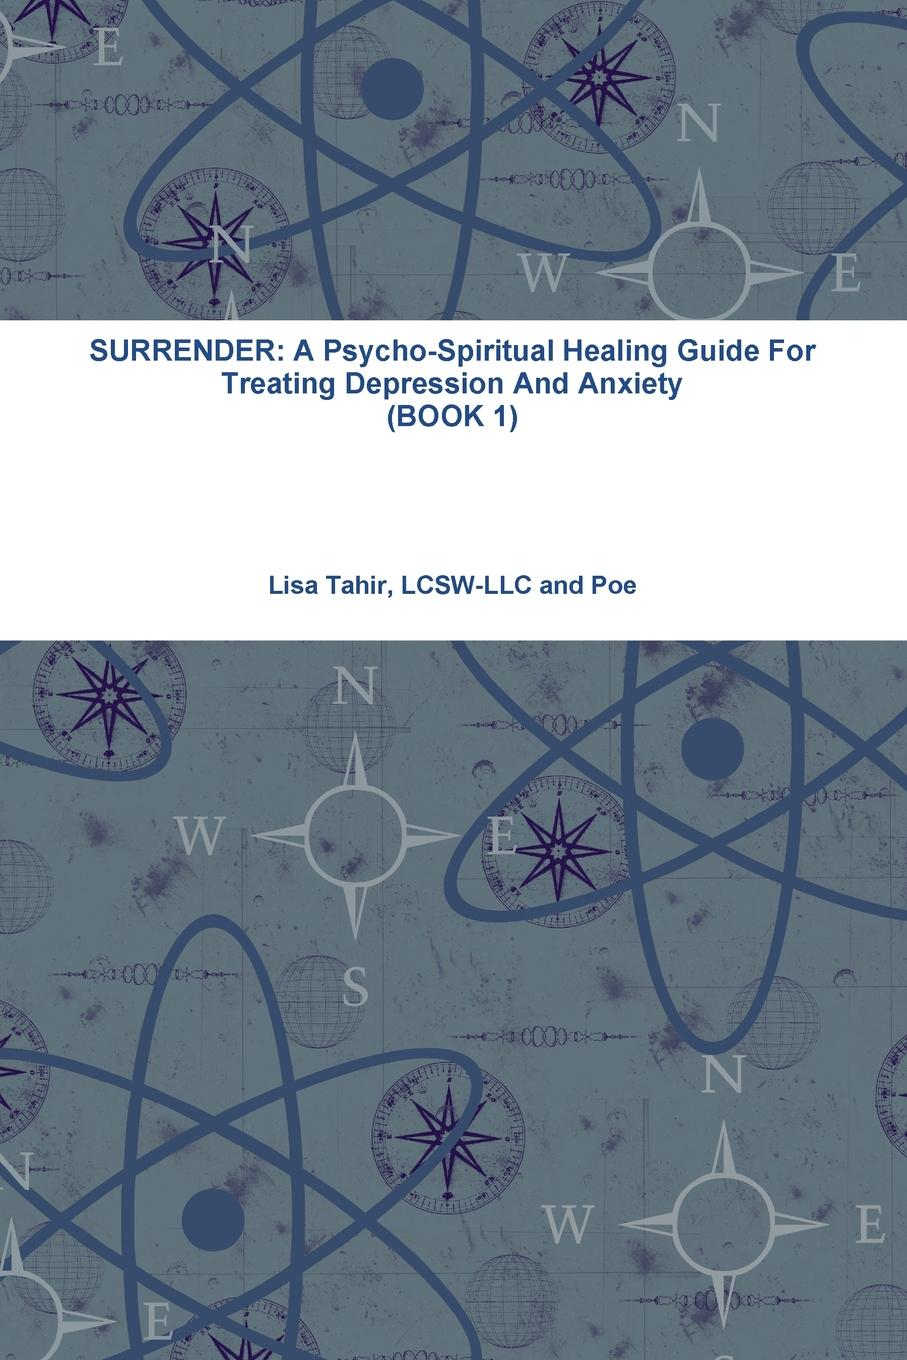 Lisa Tahir SURRENDER. A Psycho-Spiritual Healing Guide For Treating Depression And Anxiety (BOOK 1) exclusive patented waveform ces device treat anxiety depression